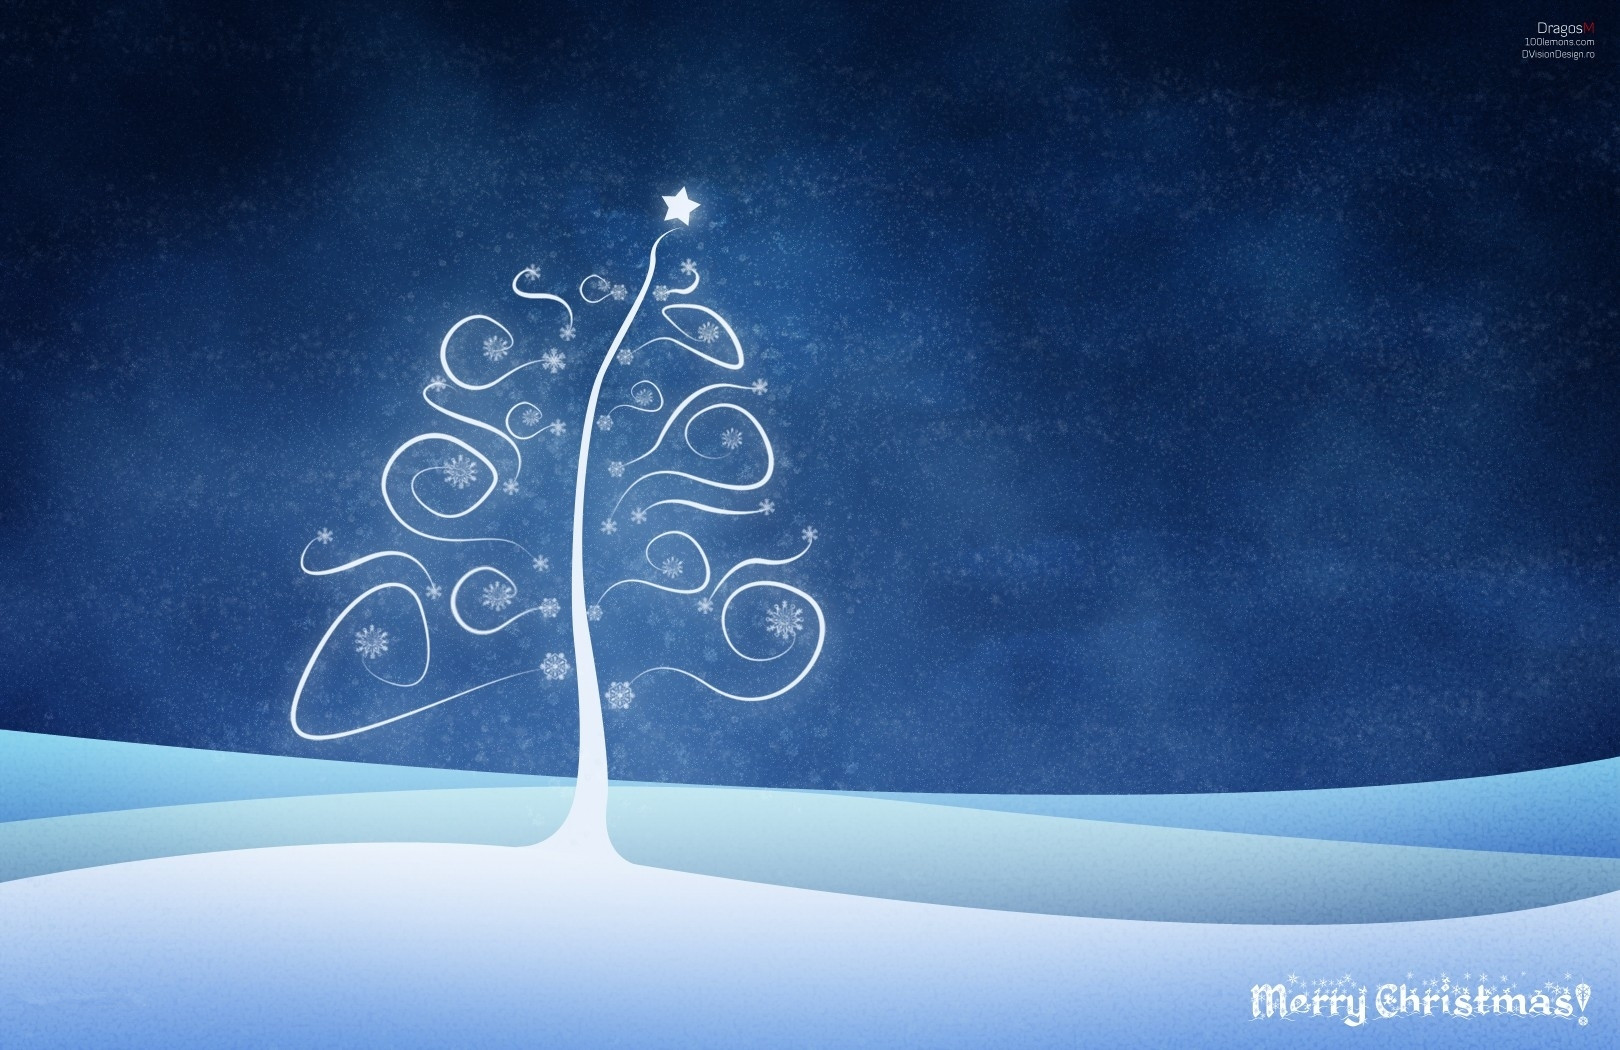 Christmas Wallpaper Clipart - Clipart Kid